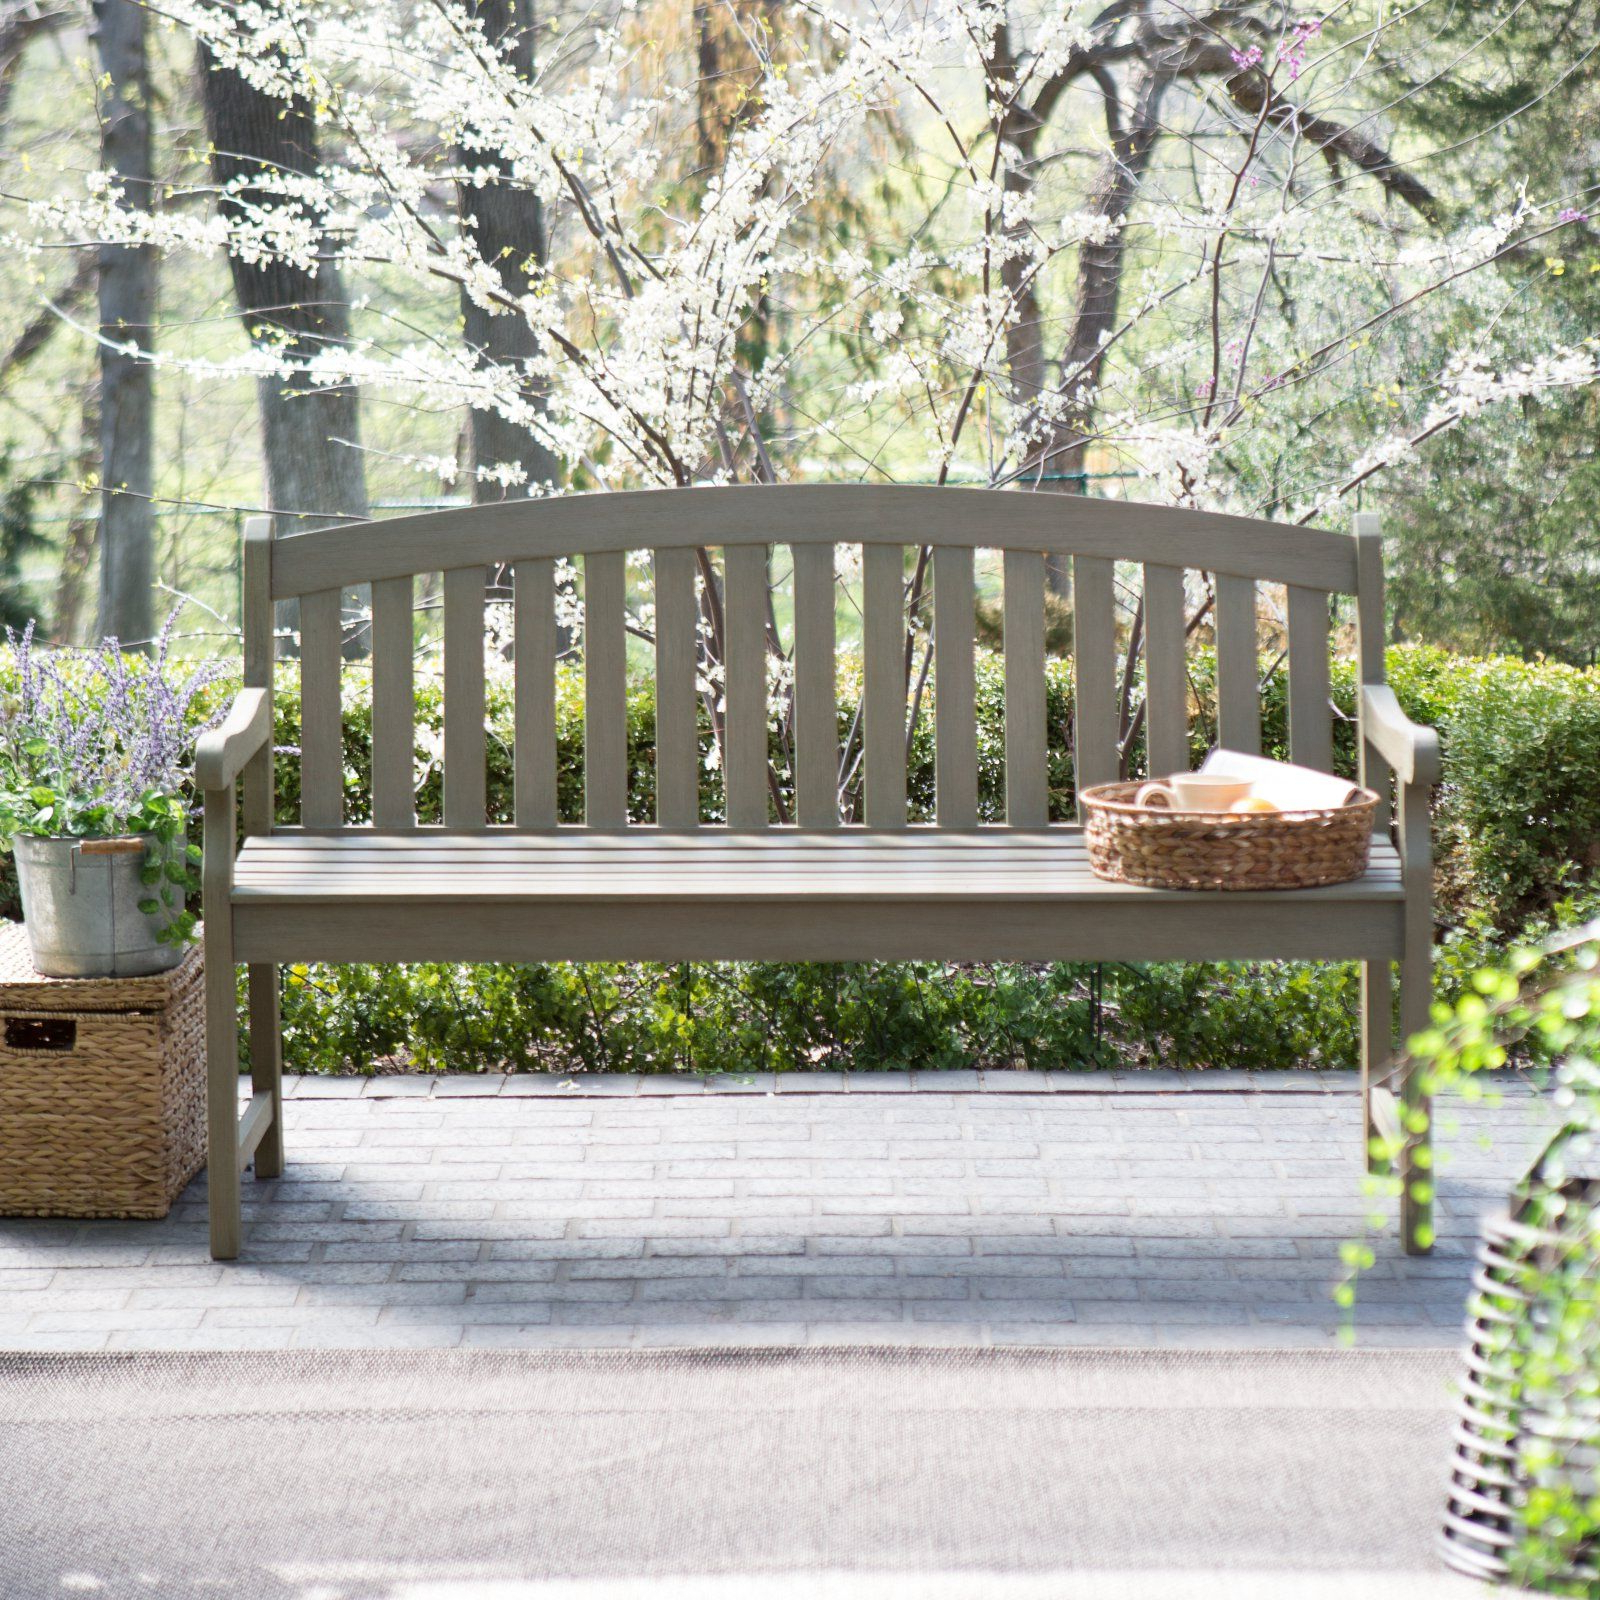 Manchester Solid Wood Garden Benches Intended For Preferred Coral Coast Amherst Curved Back 5 Ft (View 12 of 30)